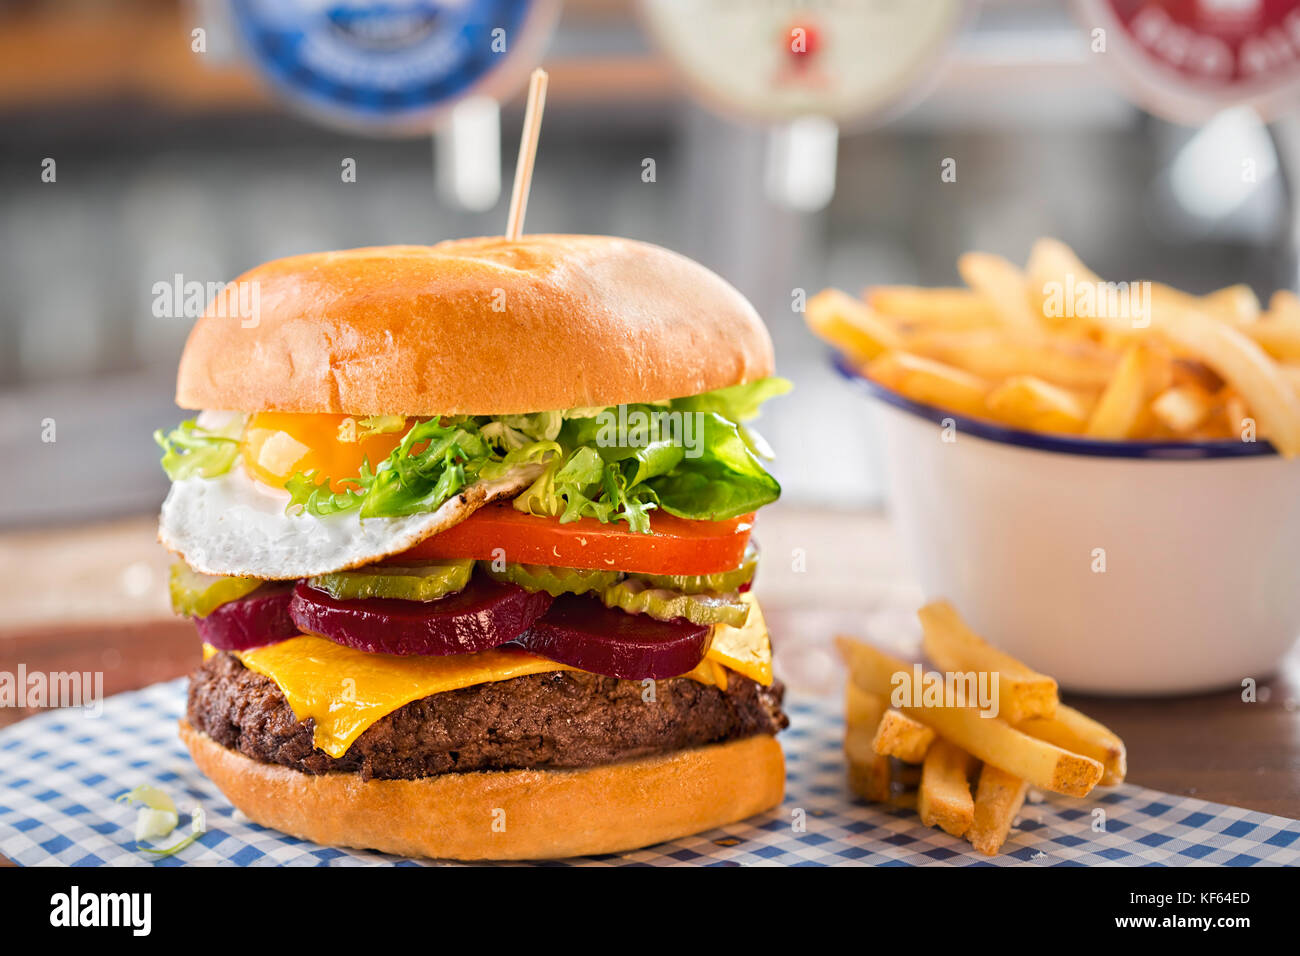 Beef burger with cheese, lettuce, tomato, beetroot & pickle, topped with a fried egg - Stock Image